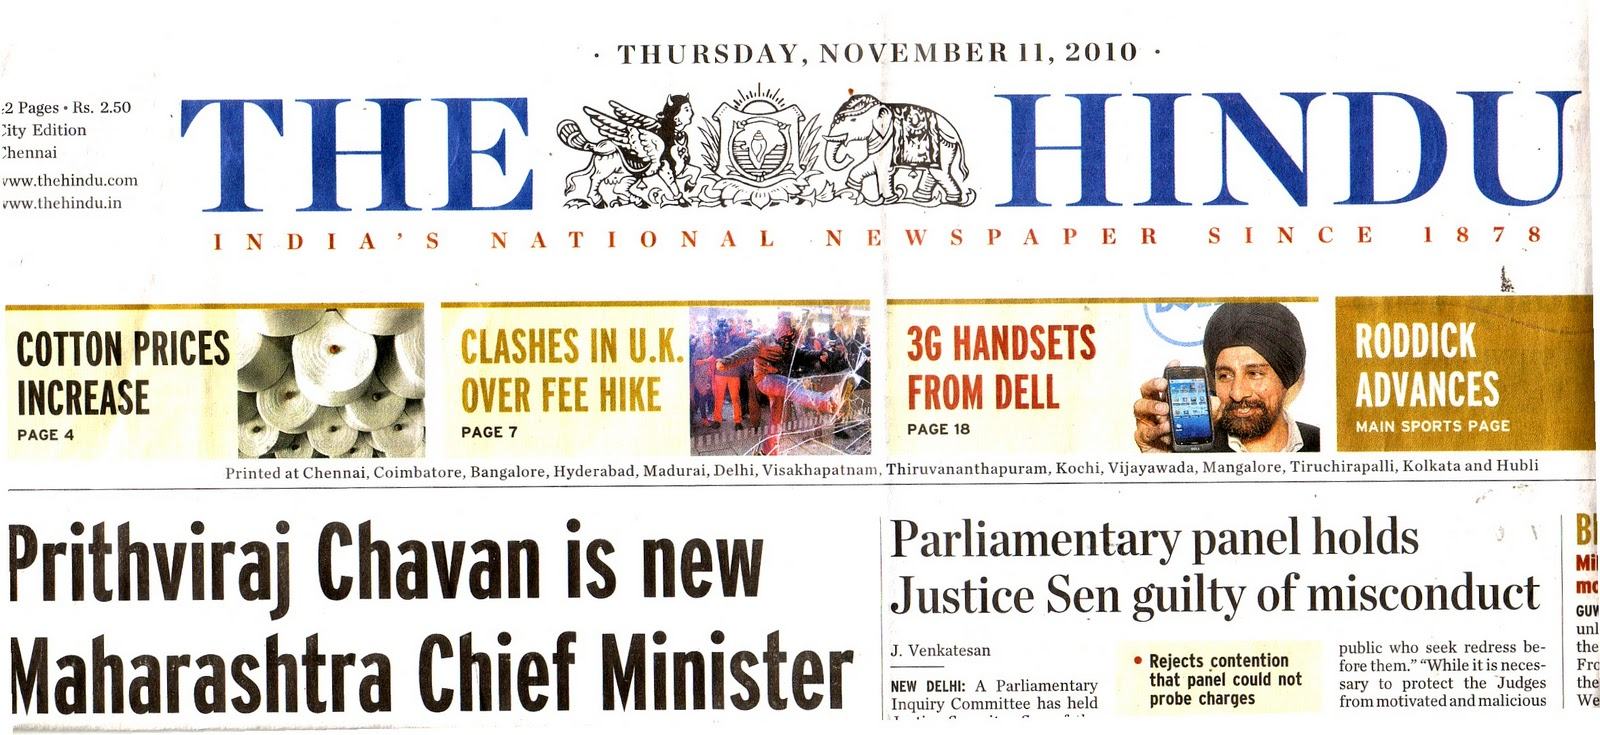 the hindu newspaper pdf free download today